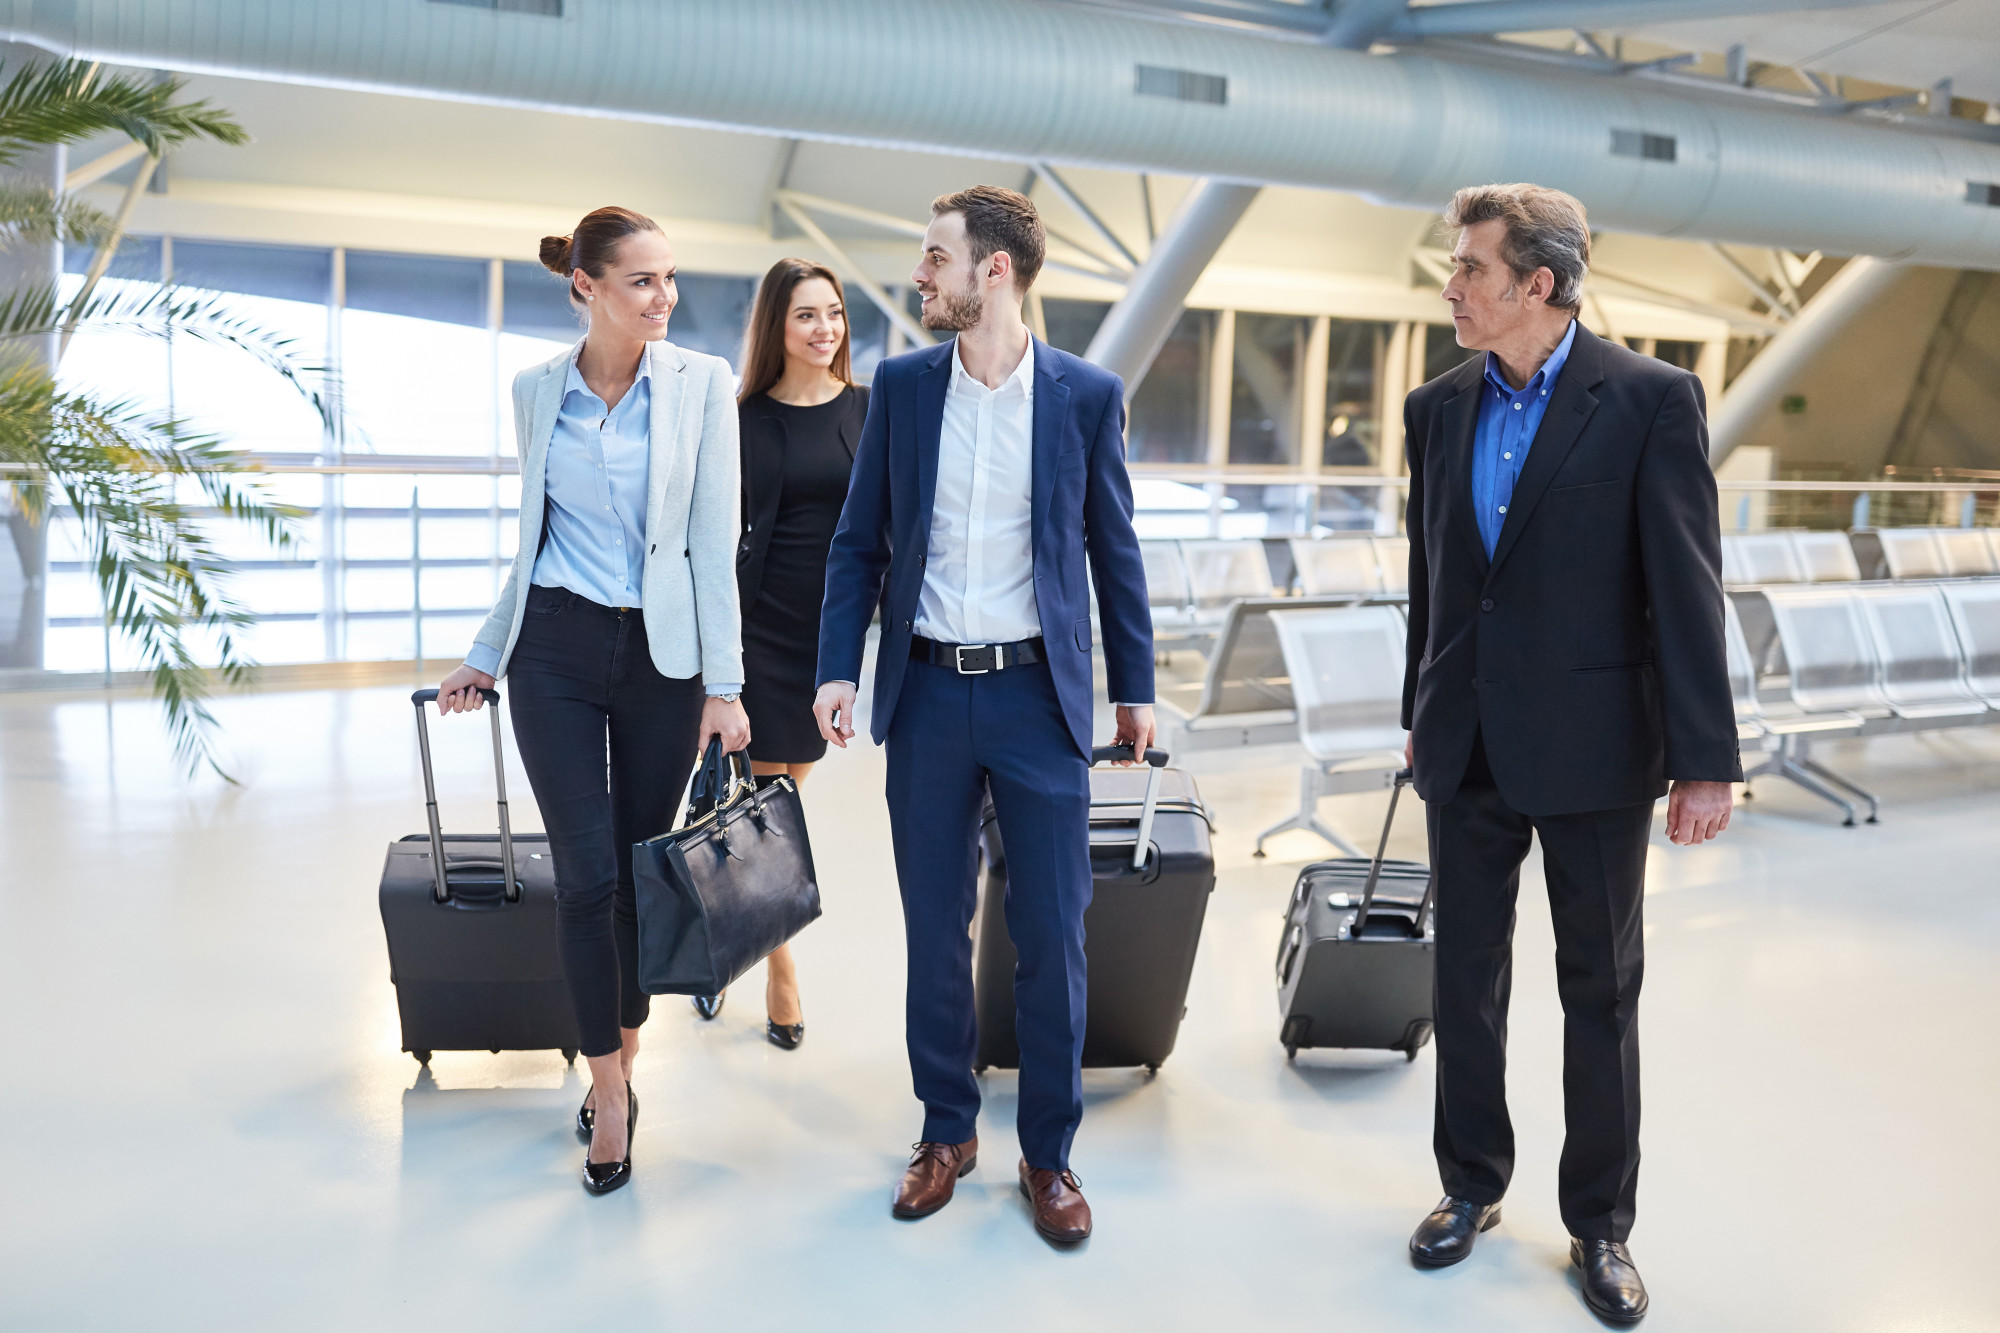 The Do's and Don'ts of Business Travel